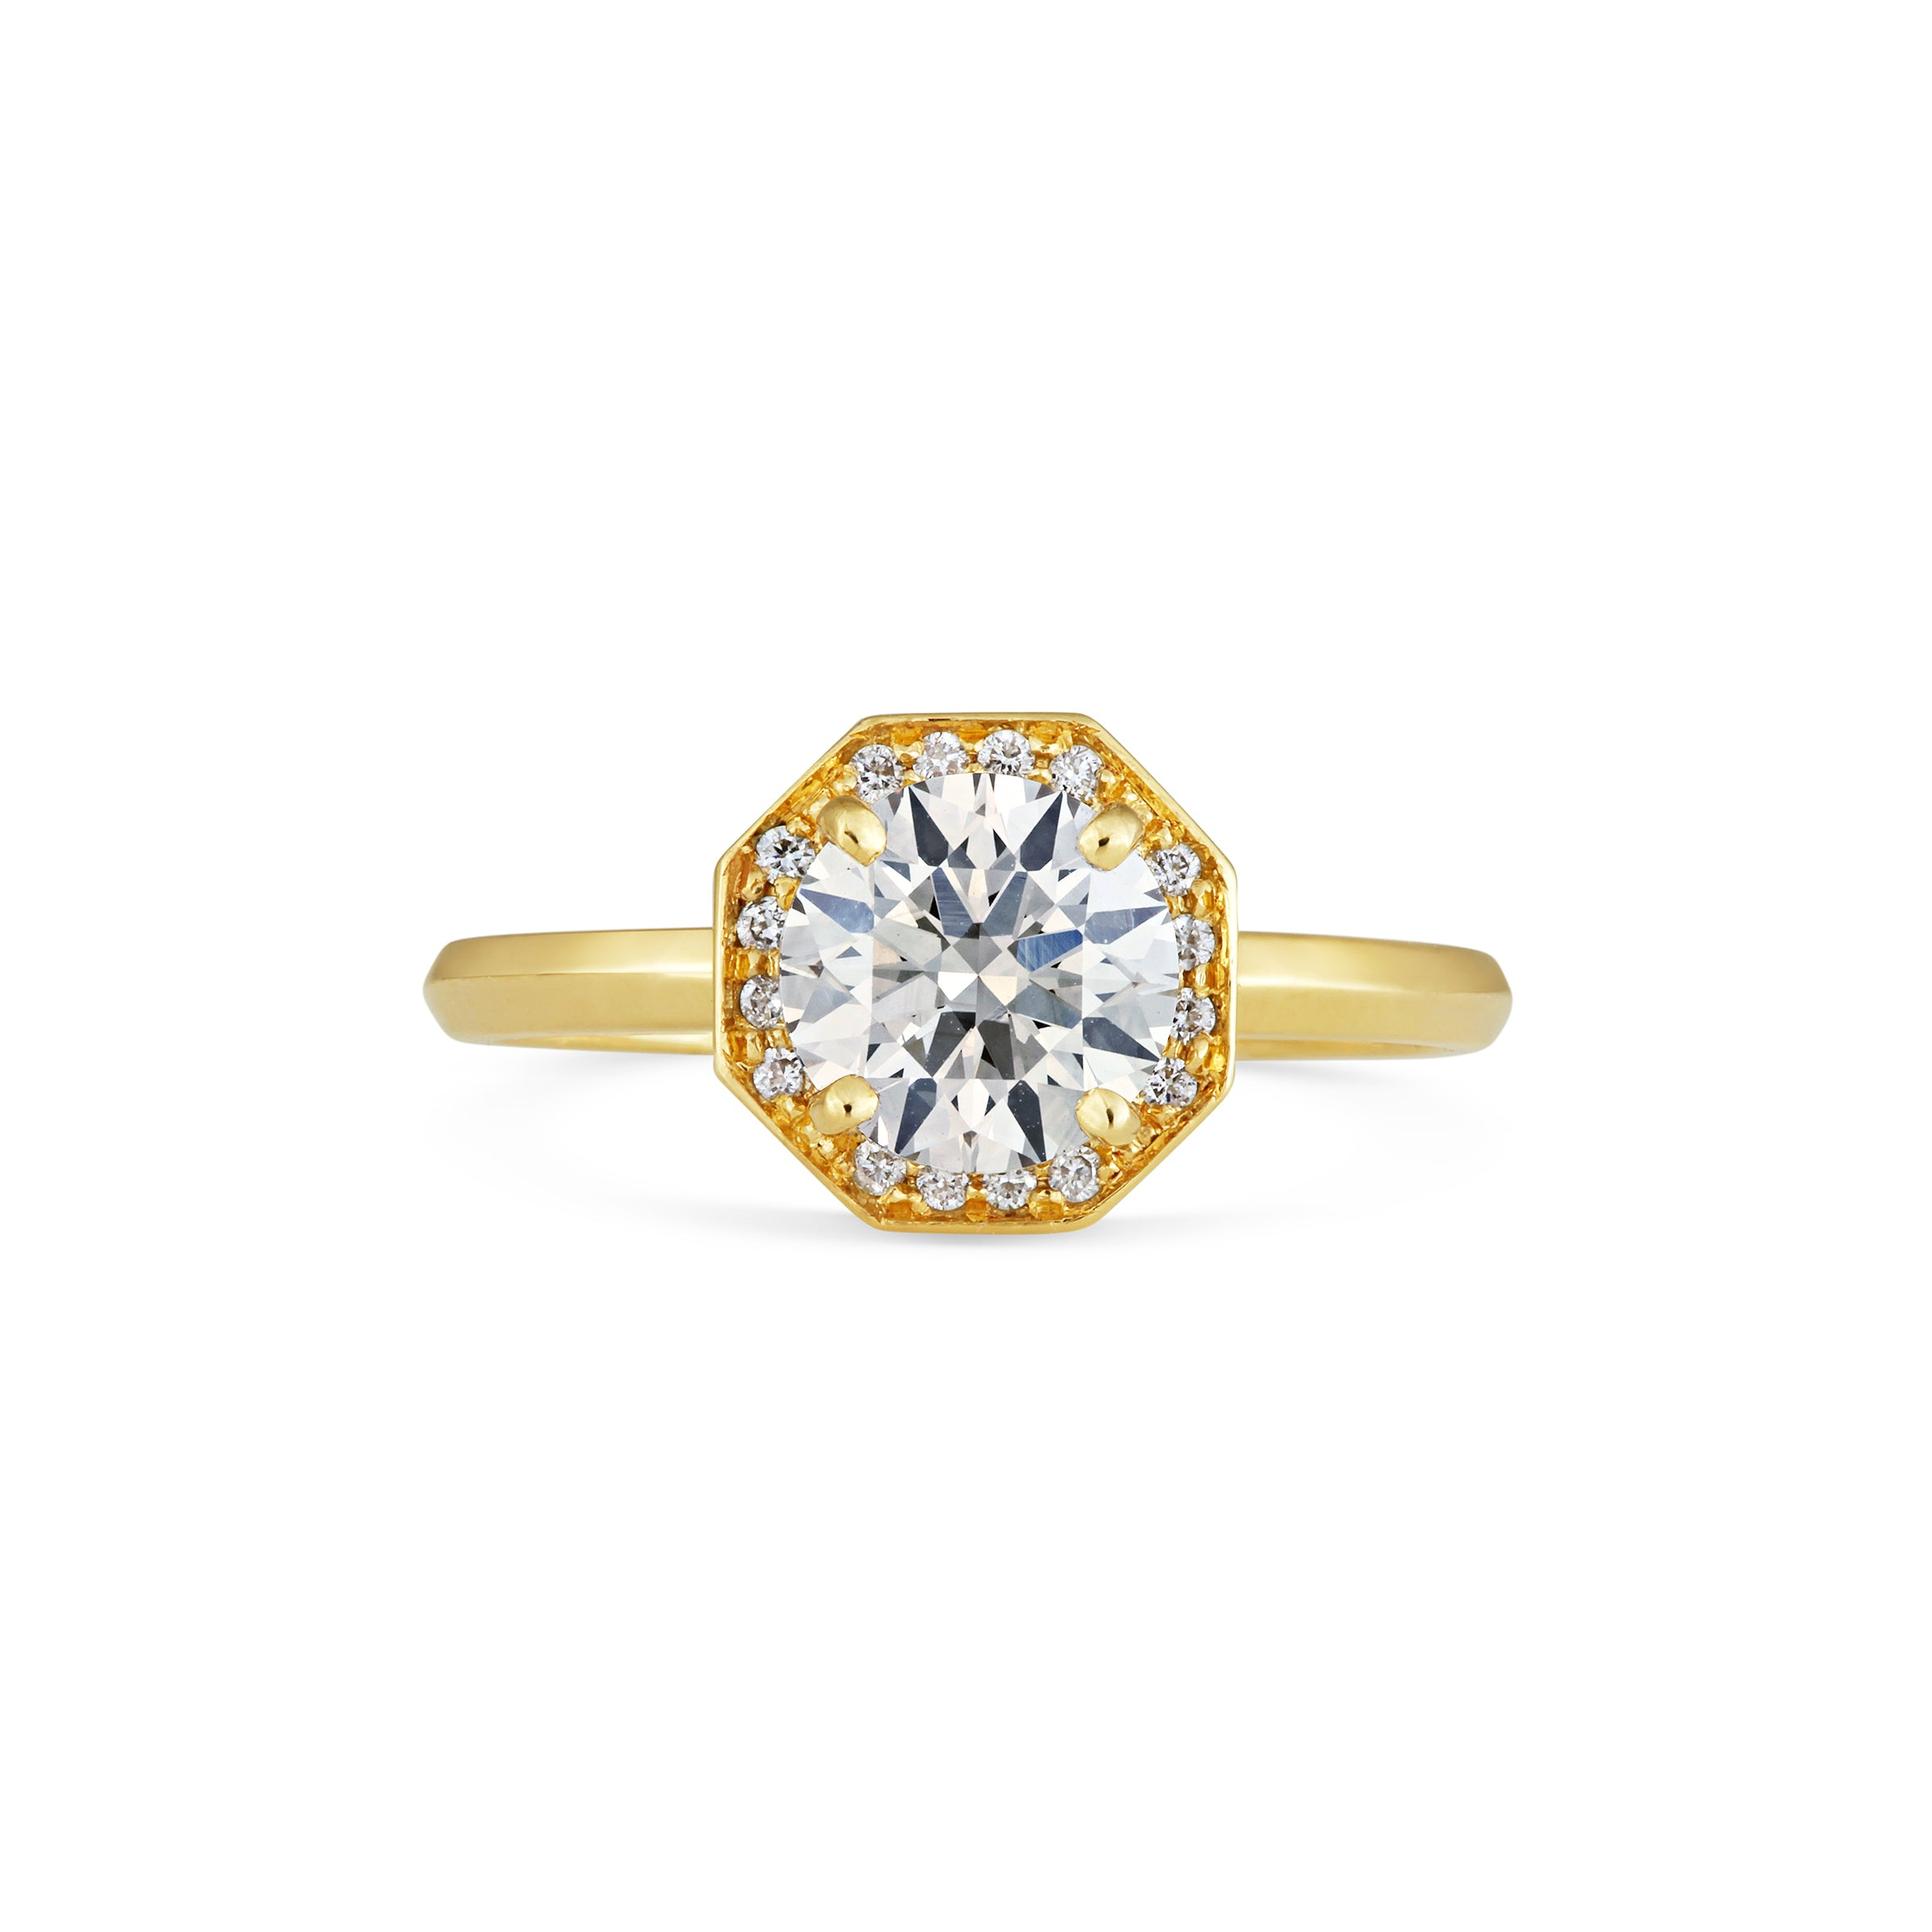 asymmetric diamonds diamond ring yellow editorial jck article rings cut main pumpkin gold and accent ct with champagne spice rose mixed engagement in white